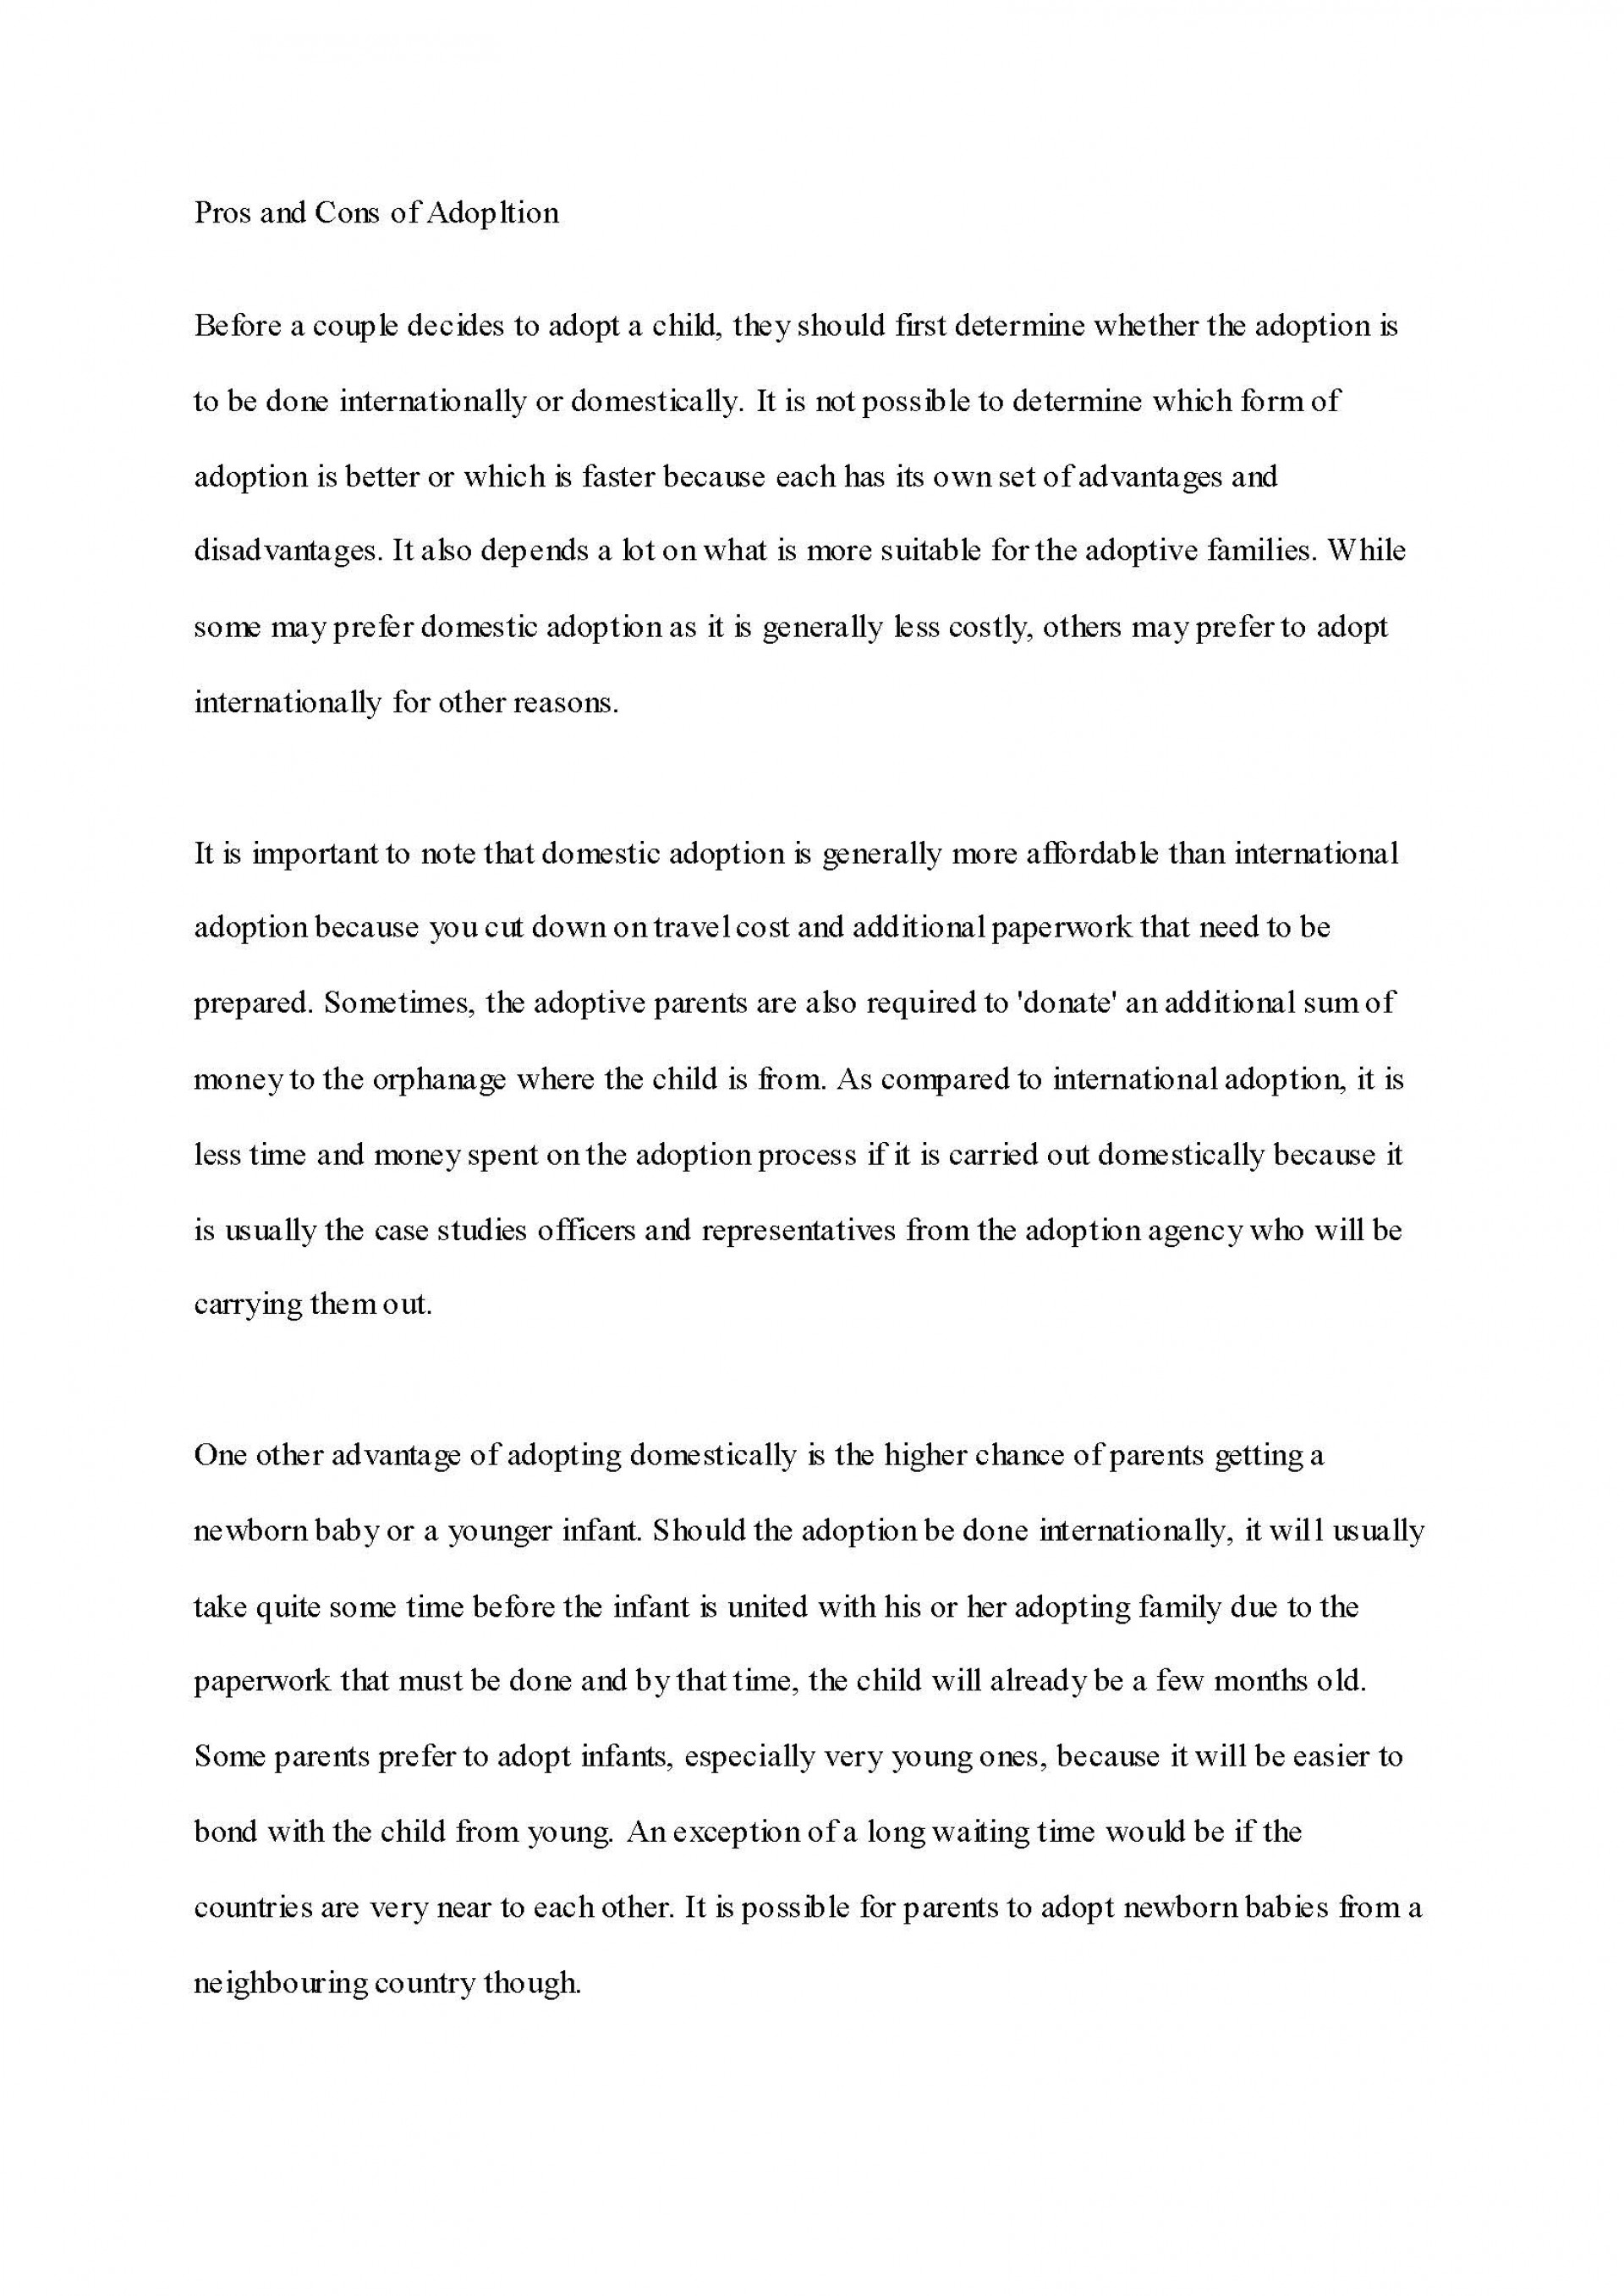 020 Courage Essays Essay Example Adoption Outstanding Mother And Heroism Moral Examples 1920